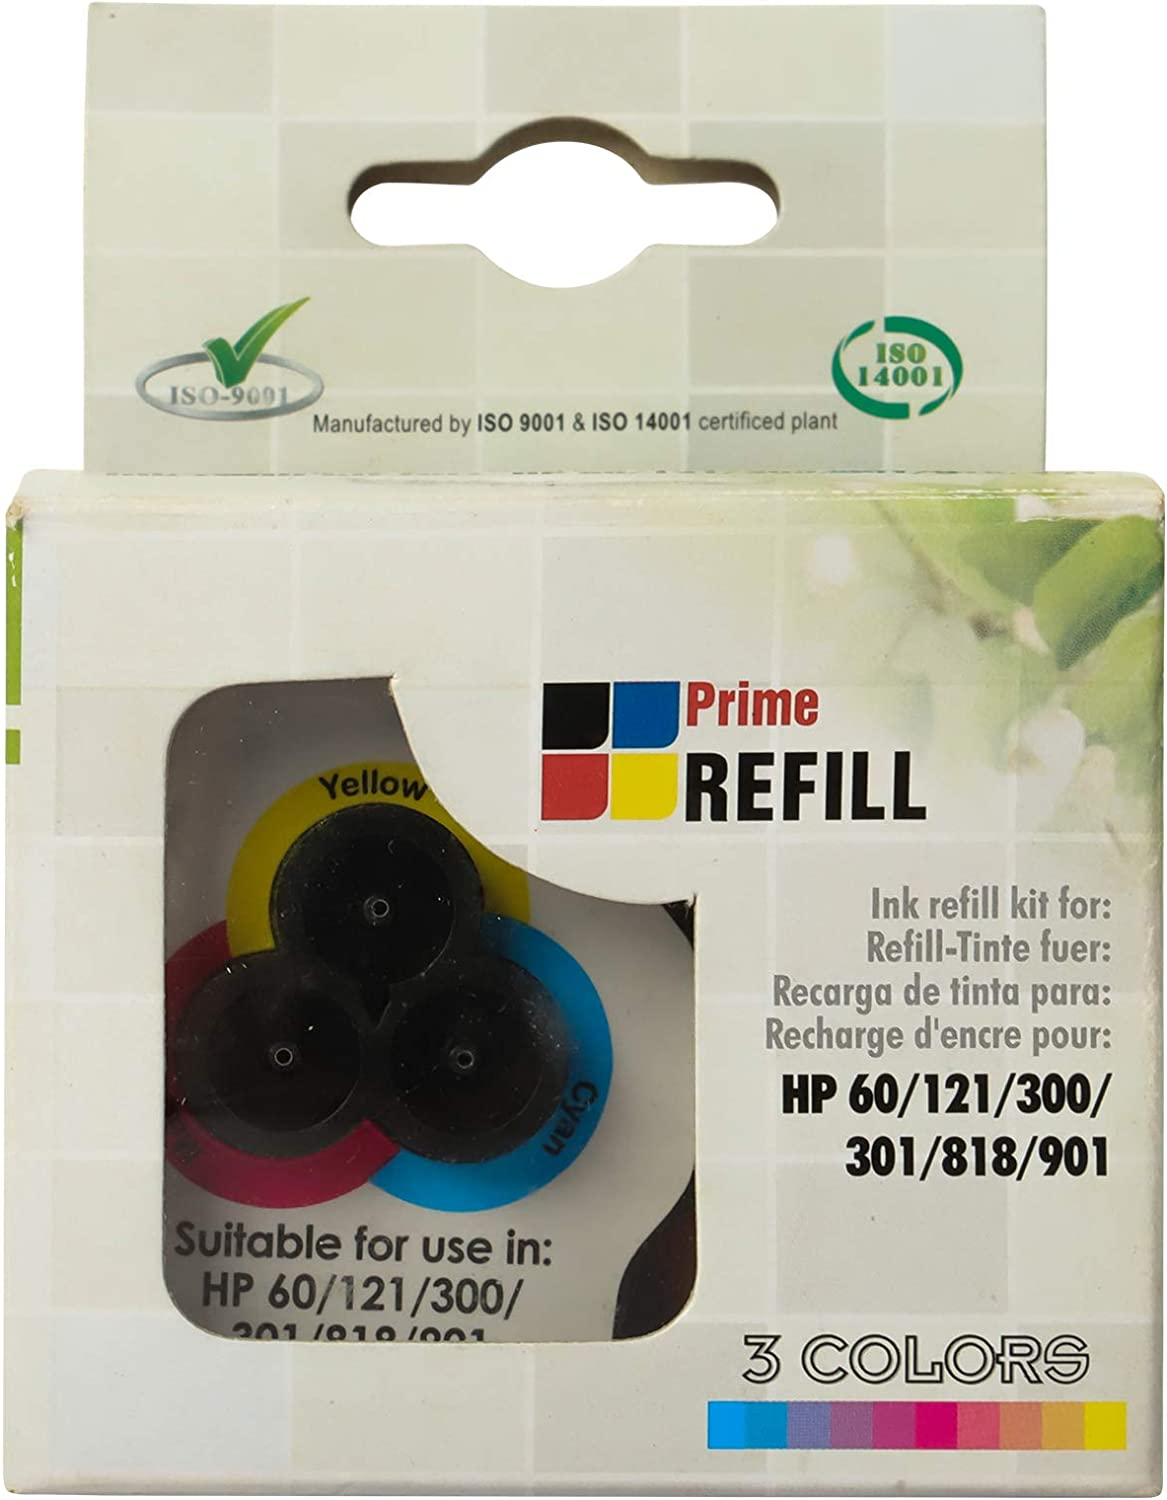 BIGGER Refill Ink Kit Compatible with HP Orginal 60 60XL 61 61XL 62 62XL 63 63XL Ink Cartridges, 1 Tri-Color Ink Refill Set with 6 Ink Bags (2 Yellow, 2 Cyan, 2 Magenta)